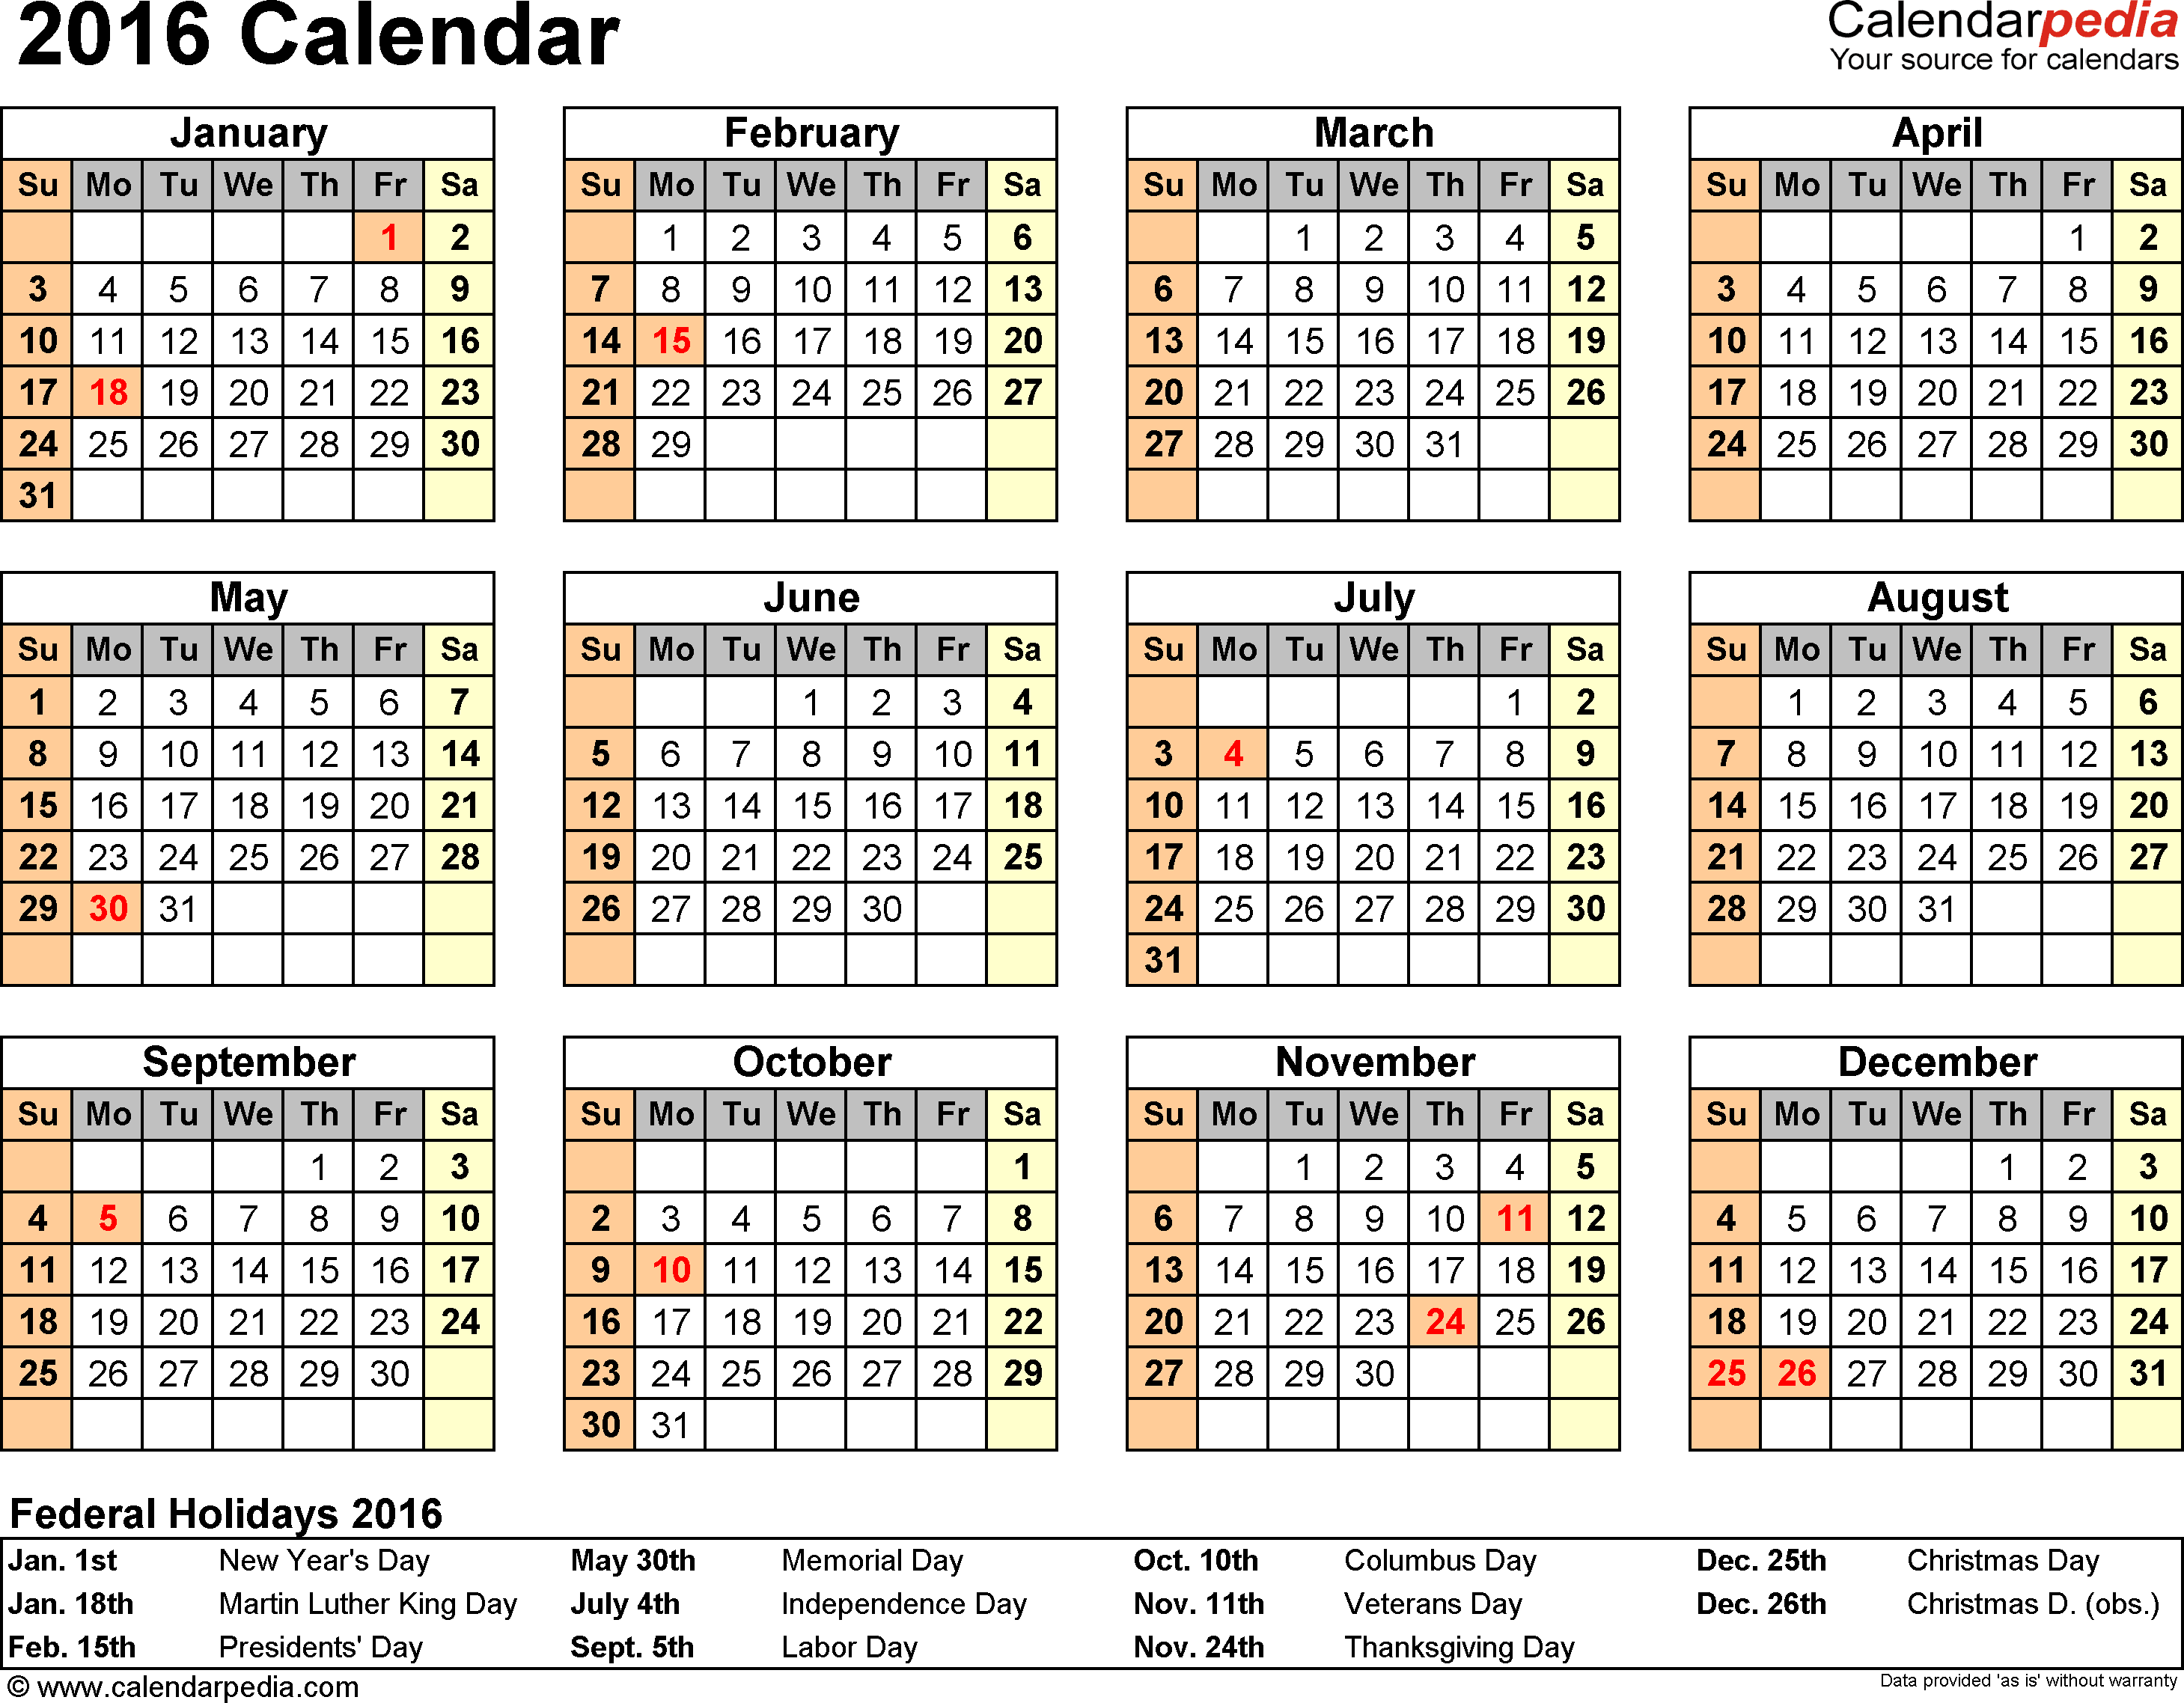 2016 Calendar Template With Holidays from www.newdesignfile.com